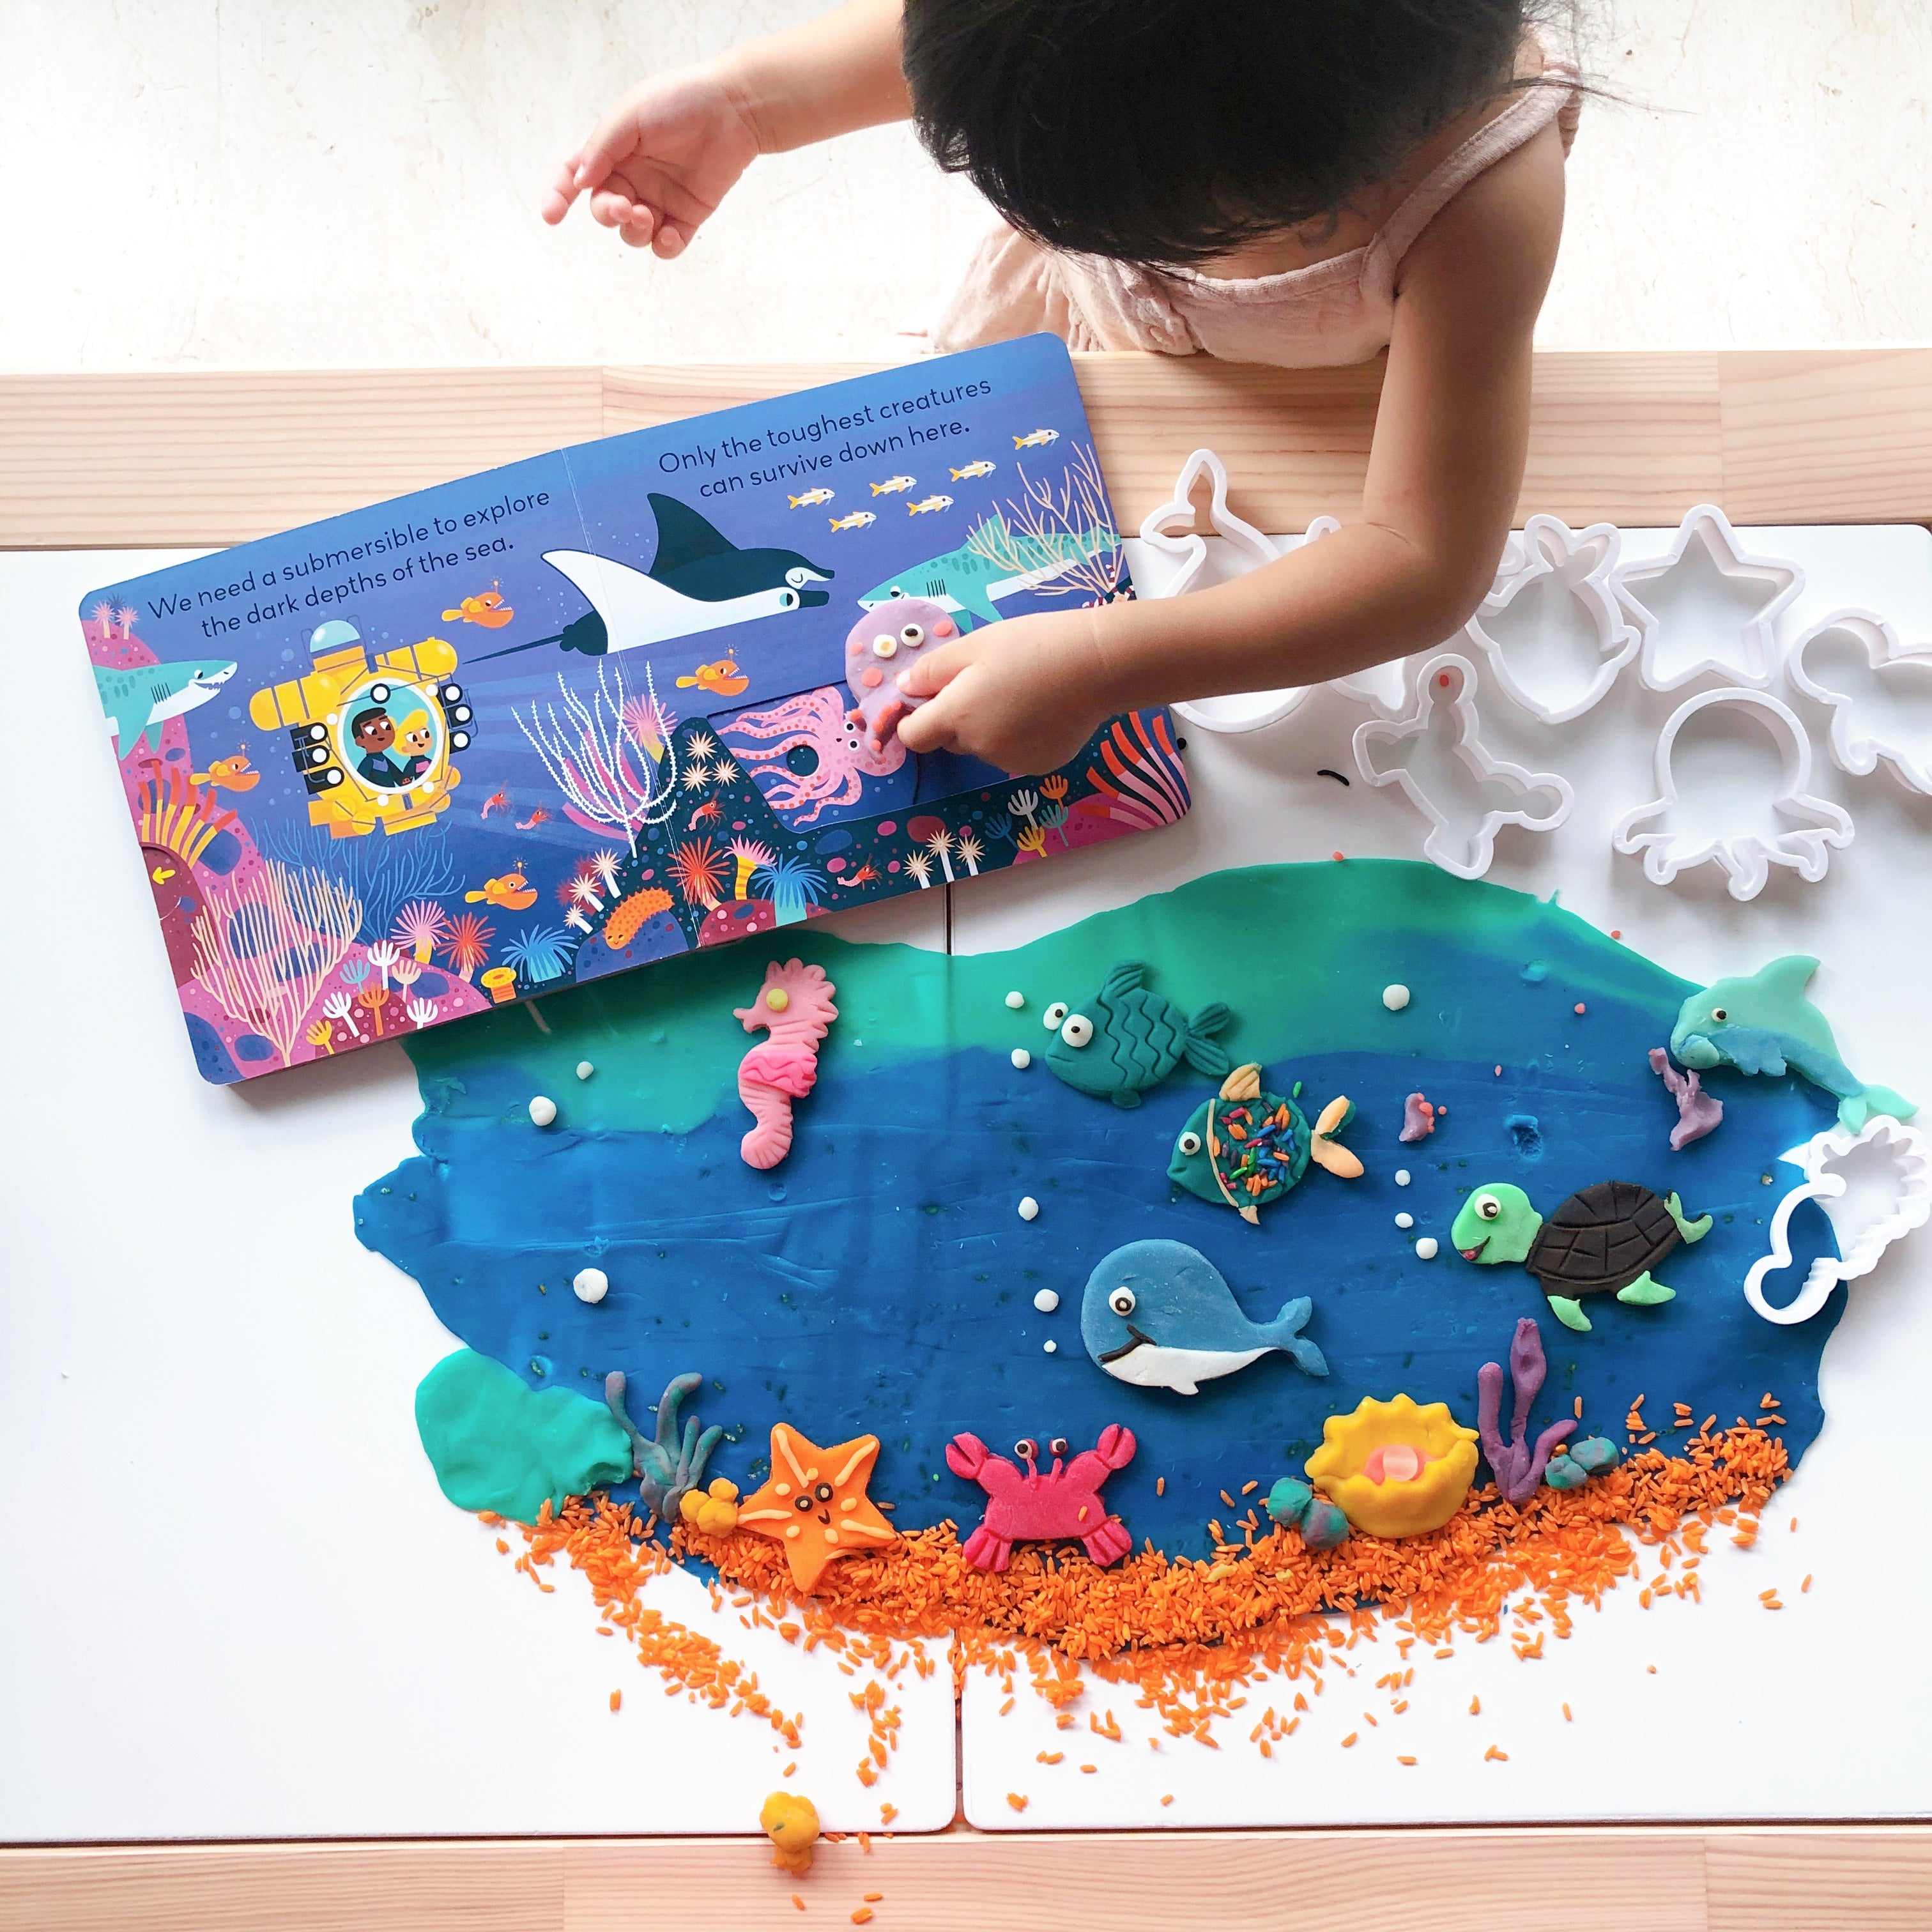 Under The Sea Play Dough Activities - Our Little Treasures